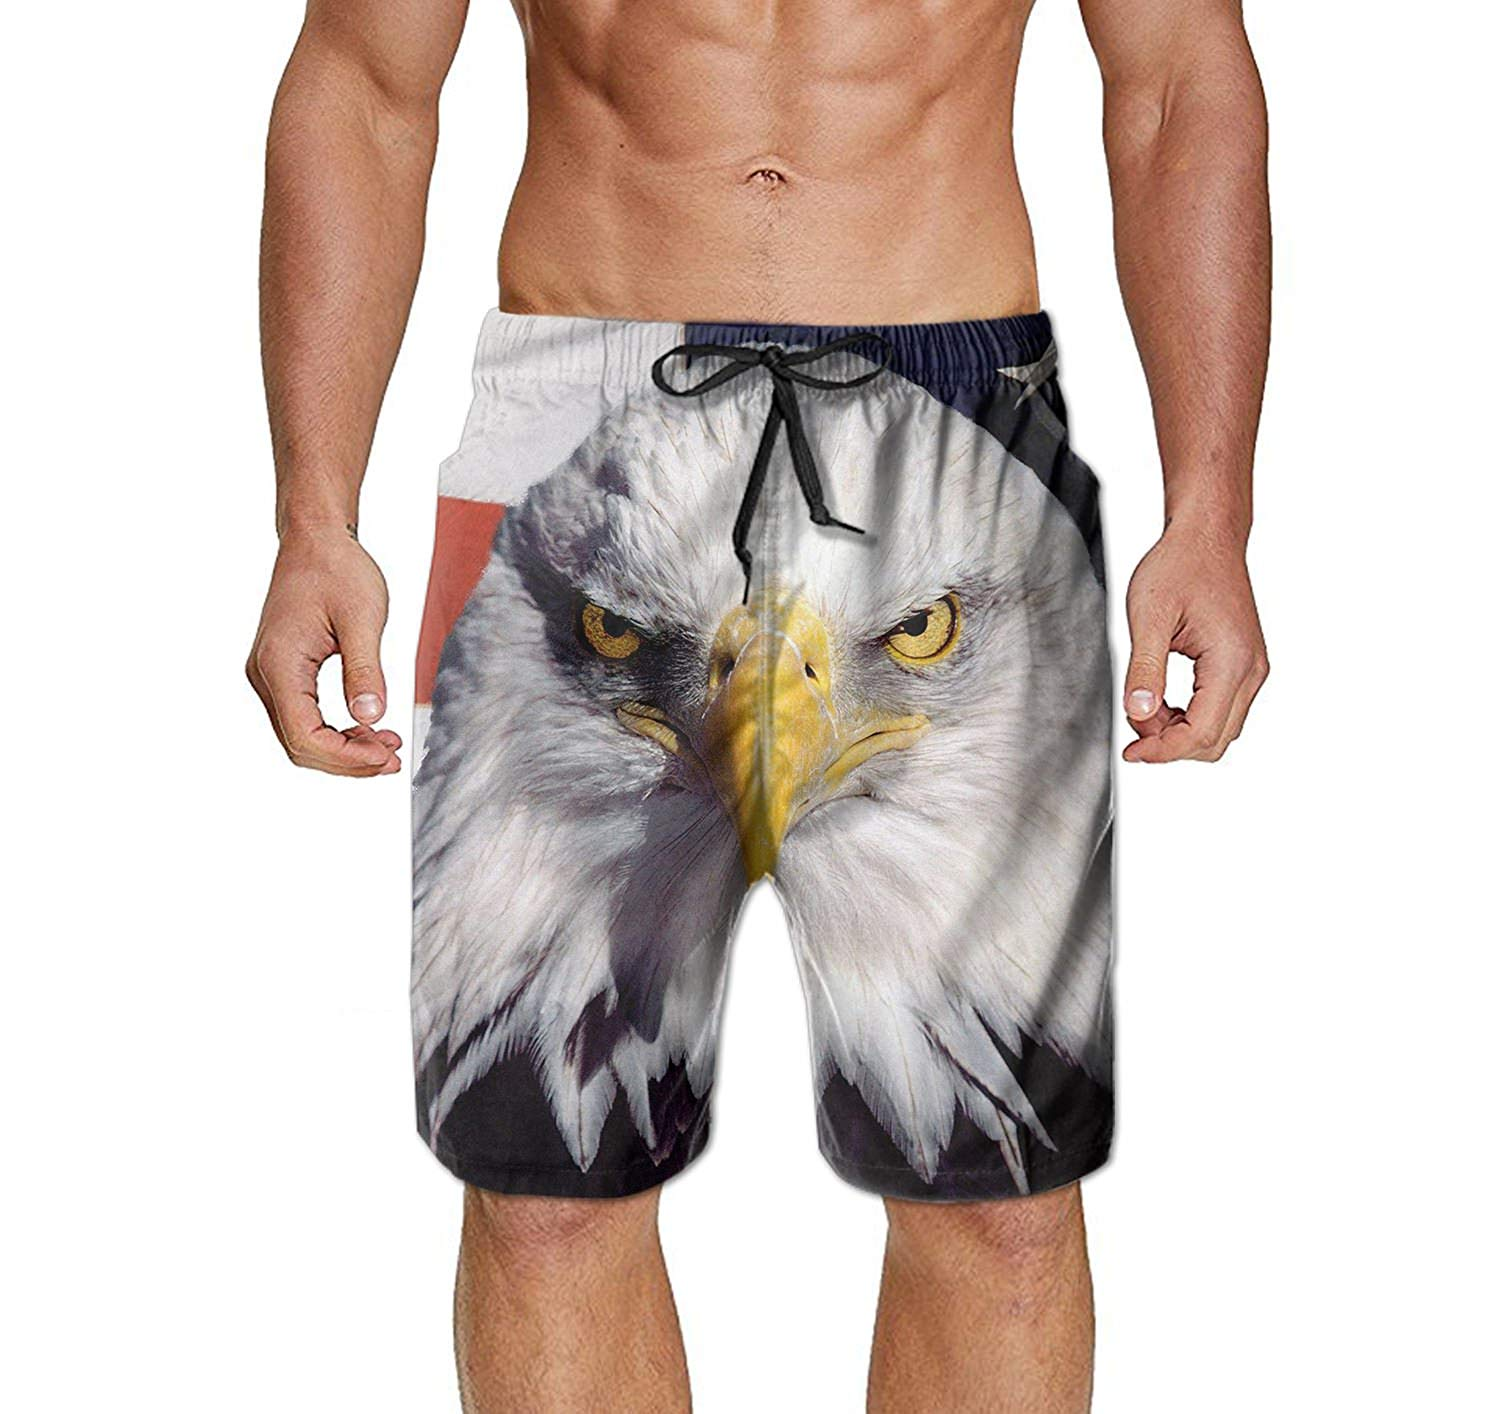 98d2550a77 Get Quotations · Men's Bald Eagle and American Flag Swim Trunks Beach Shorts  Board Shorts